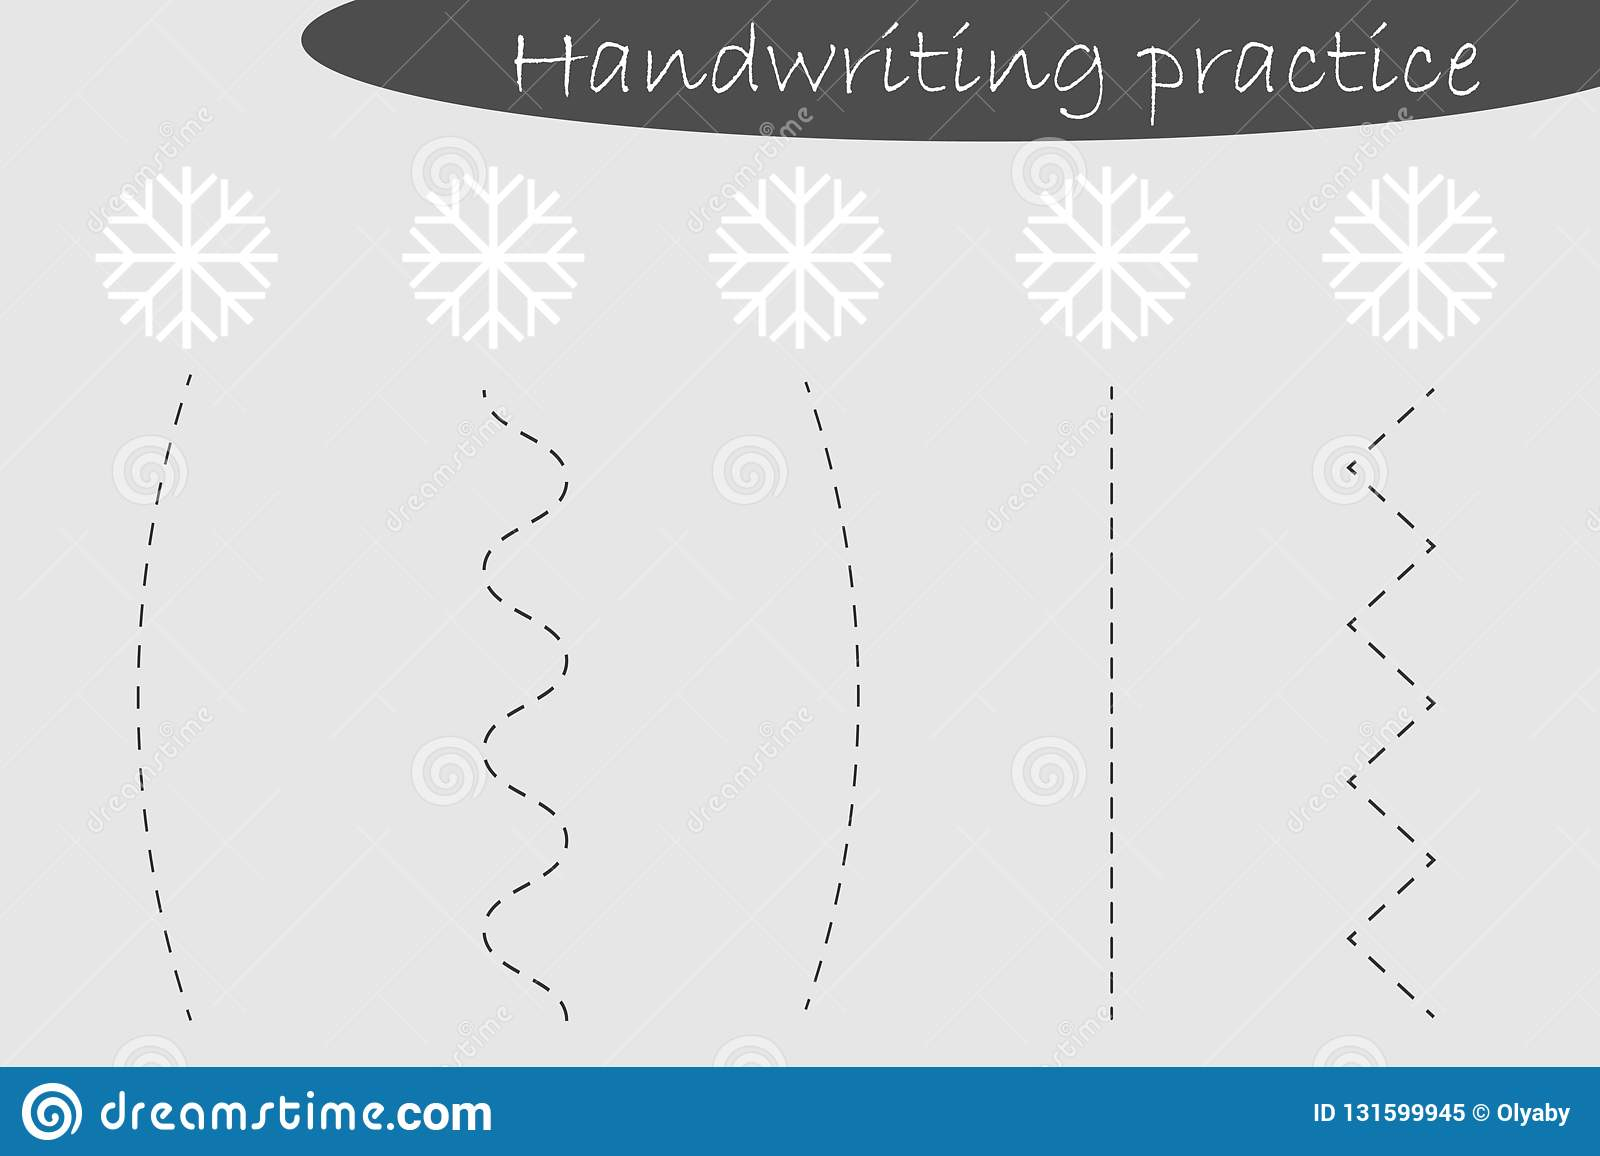 Handwriting Practice Sheet Christmas Theme Snowflakes